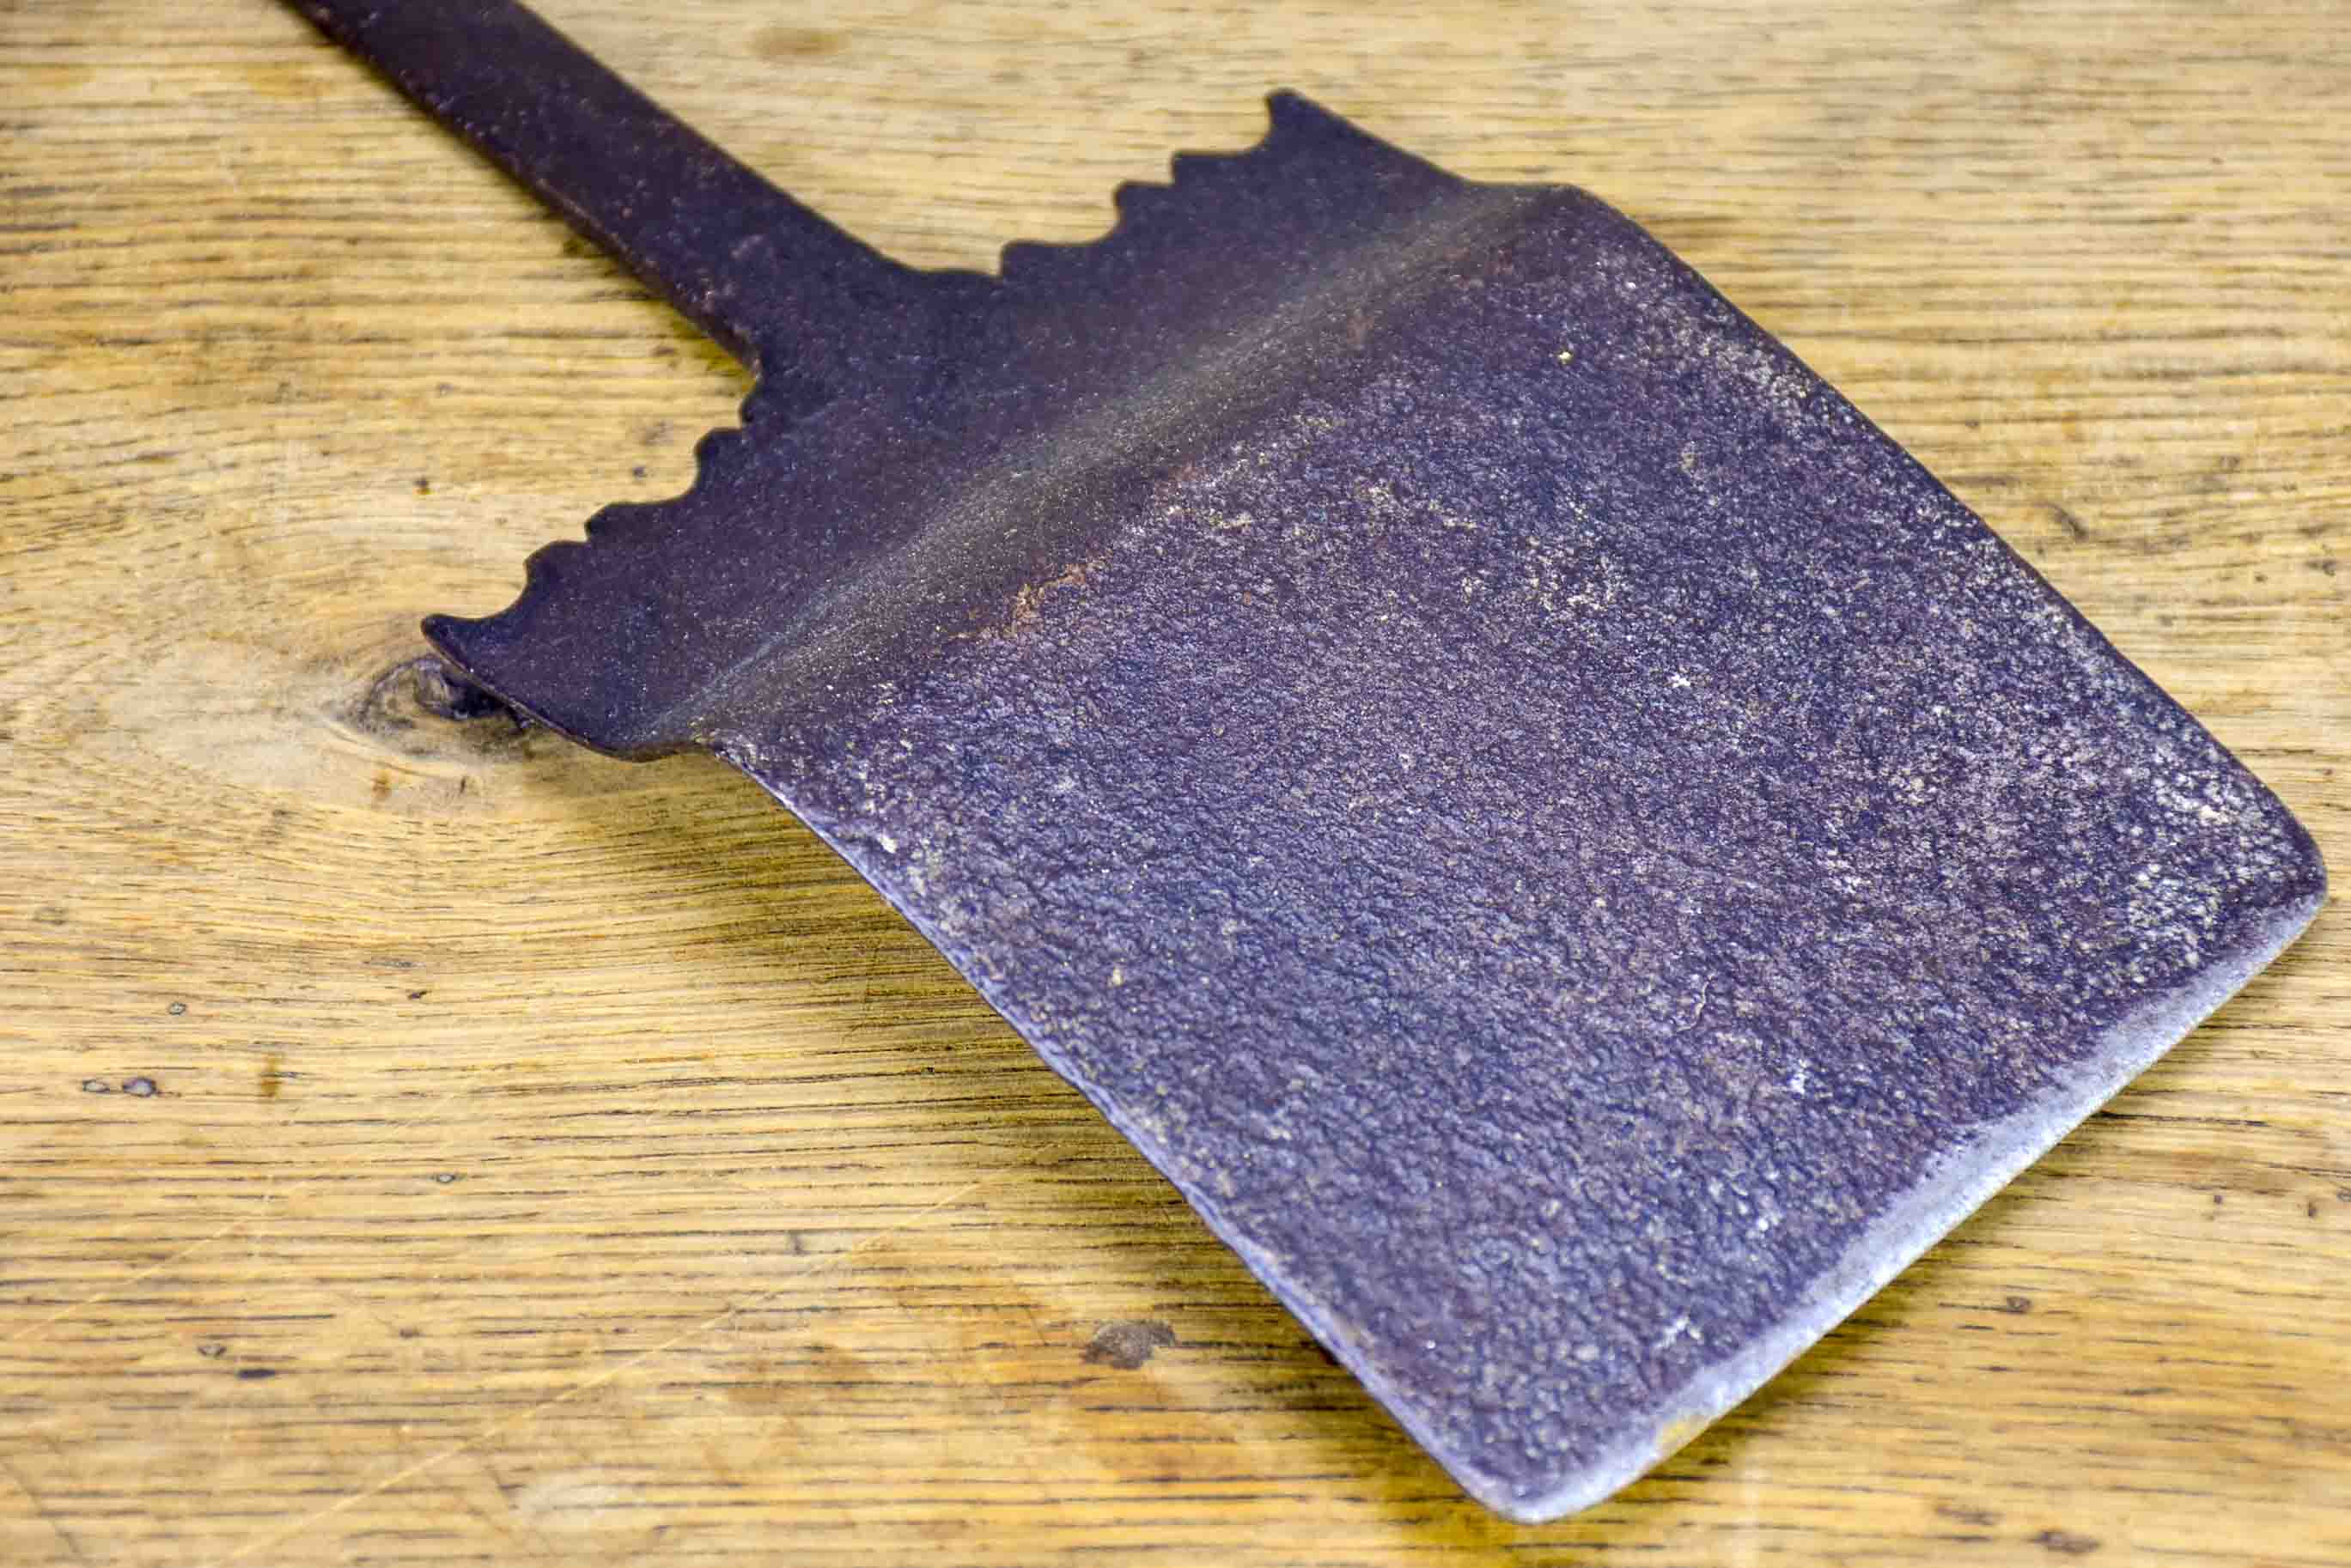 18th Century French fireplace shovel